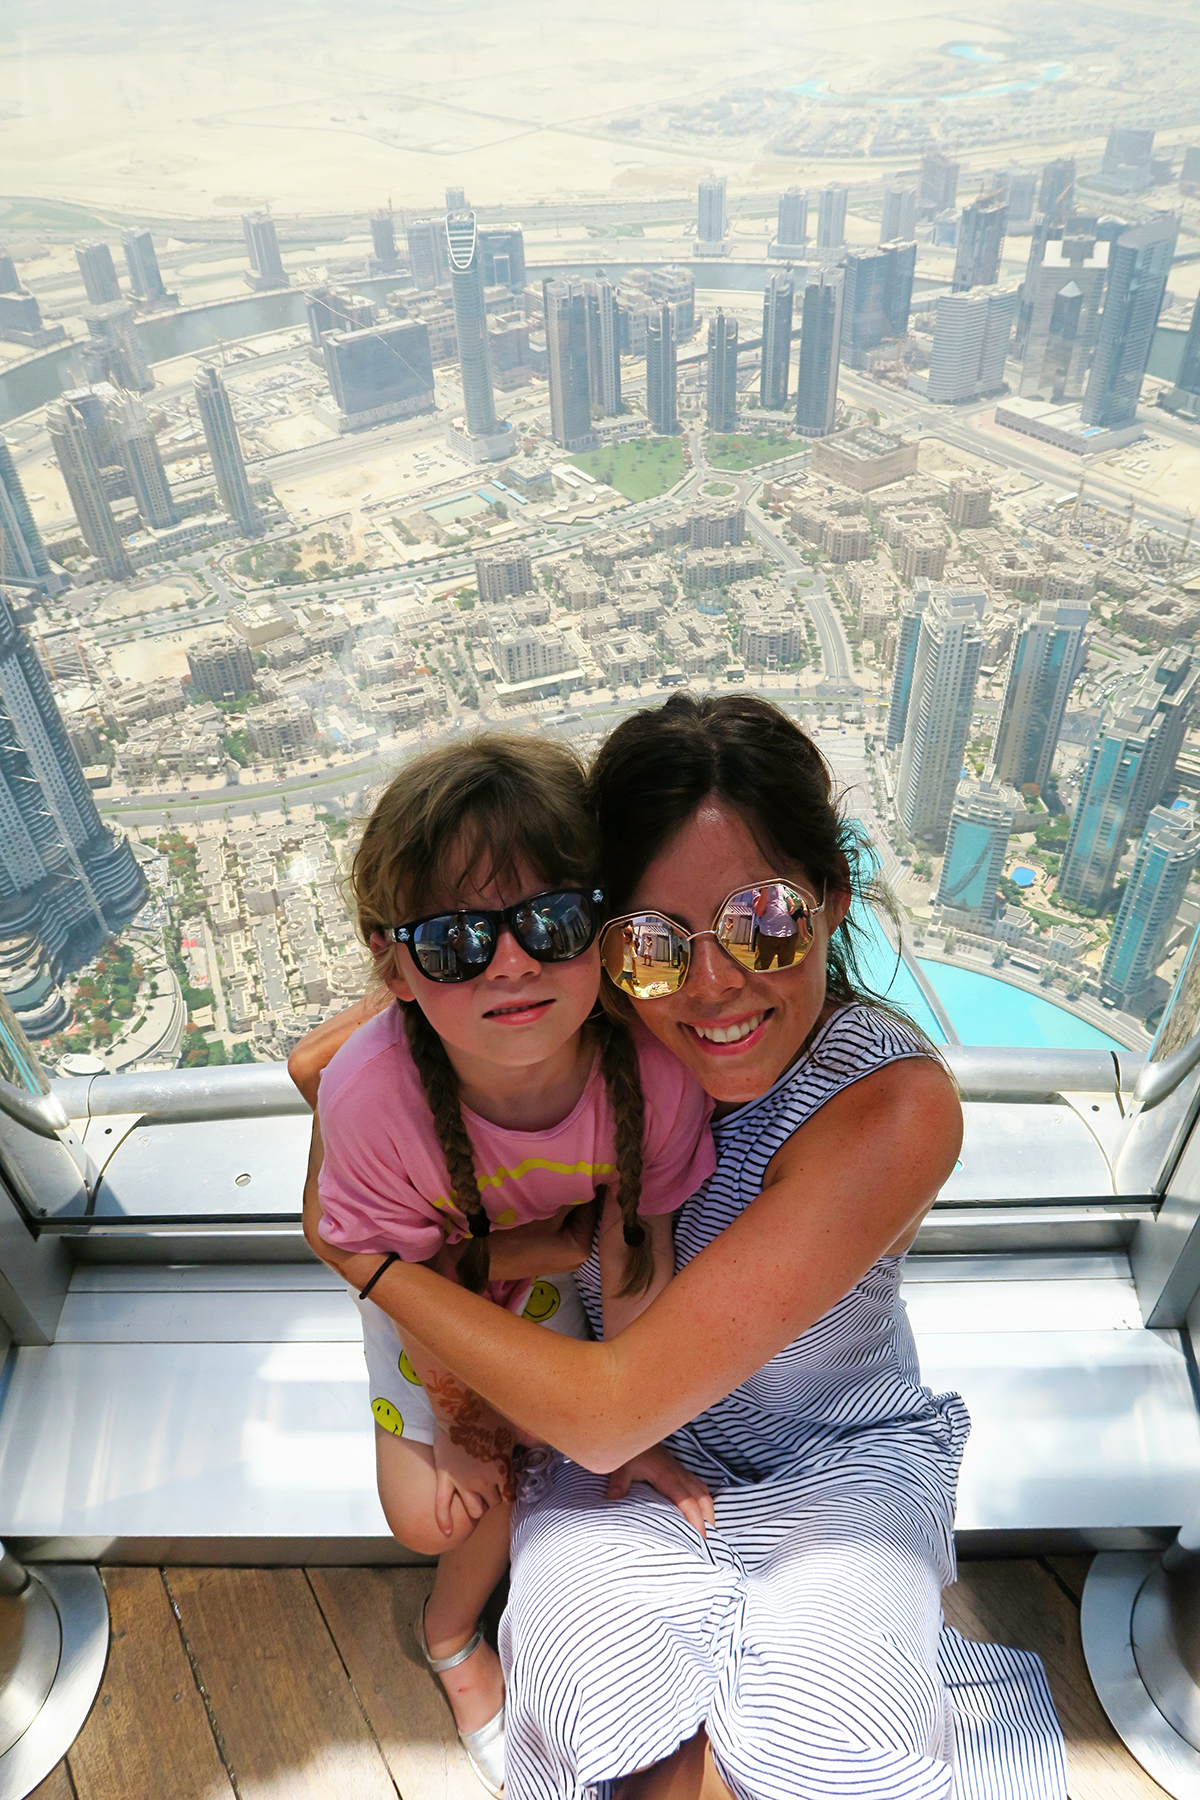 Up the Burj Khalifa, Dubai Mall & The Burj al Arab